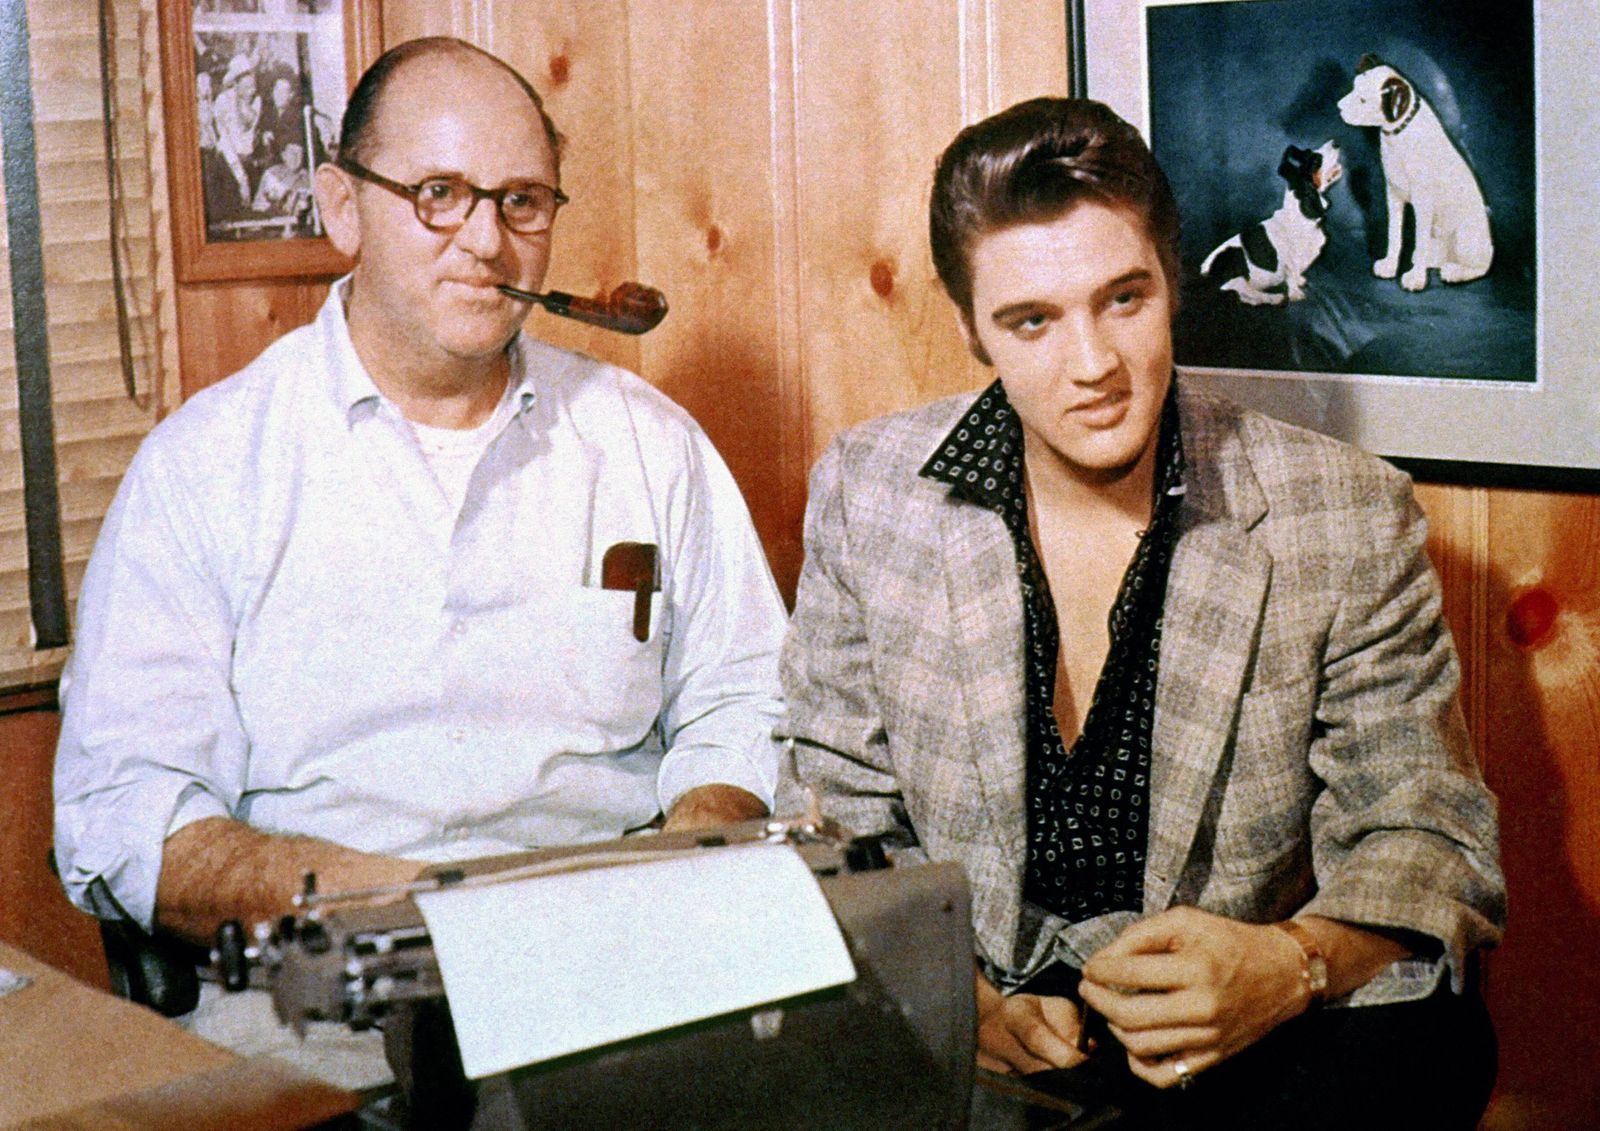 Elvis Presley with his manager Colonel Tom Parker signing a record contract with RCA Victor Octob